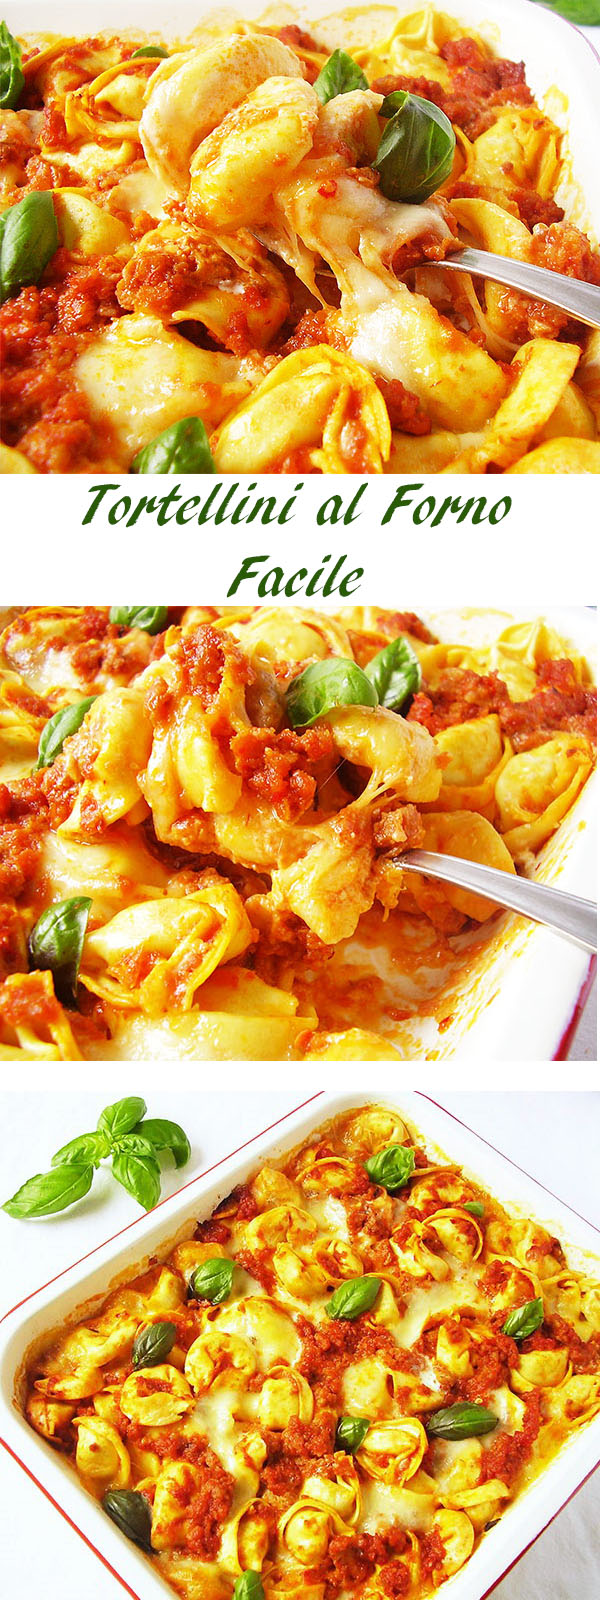 Tortellini al Forno Facile : Tortellini Bake Easy Way.